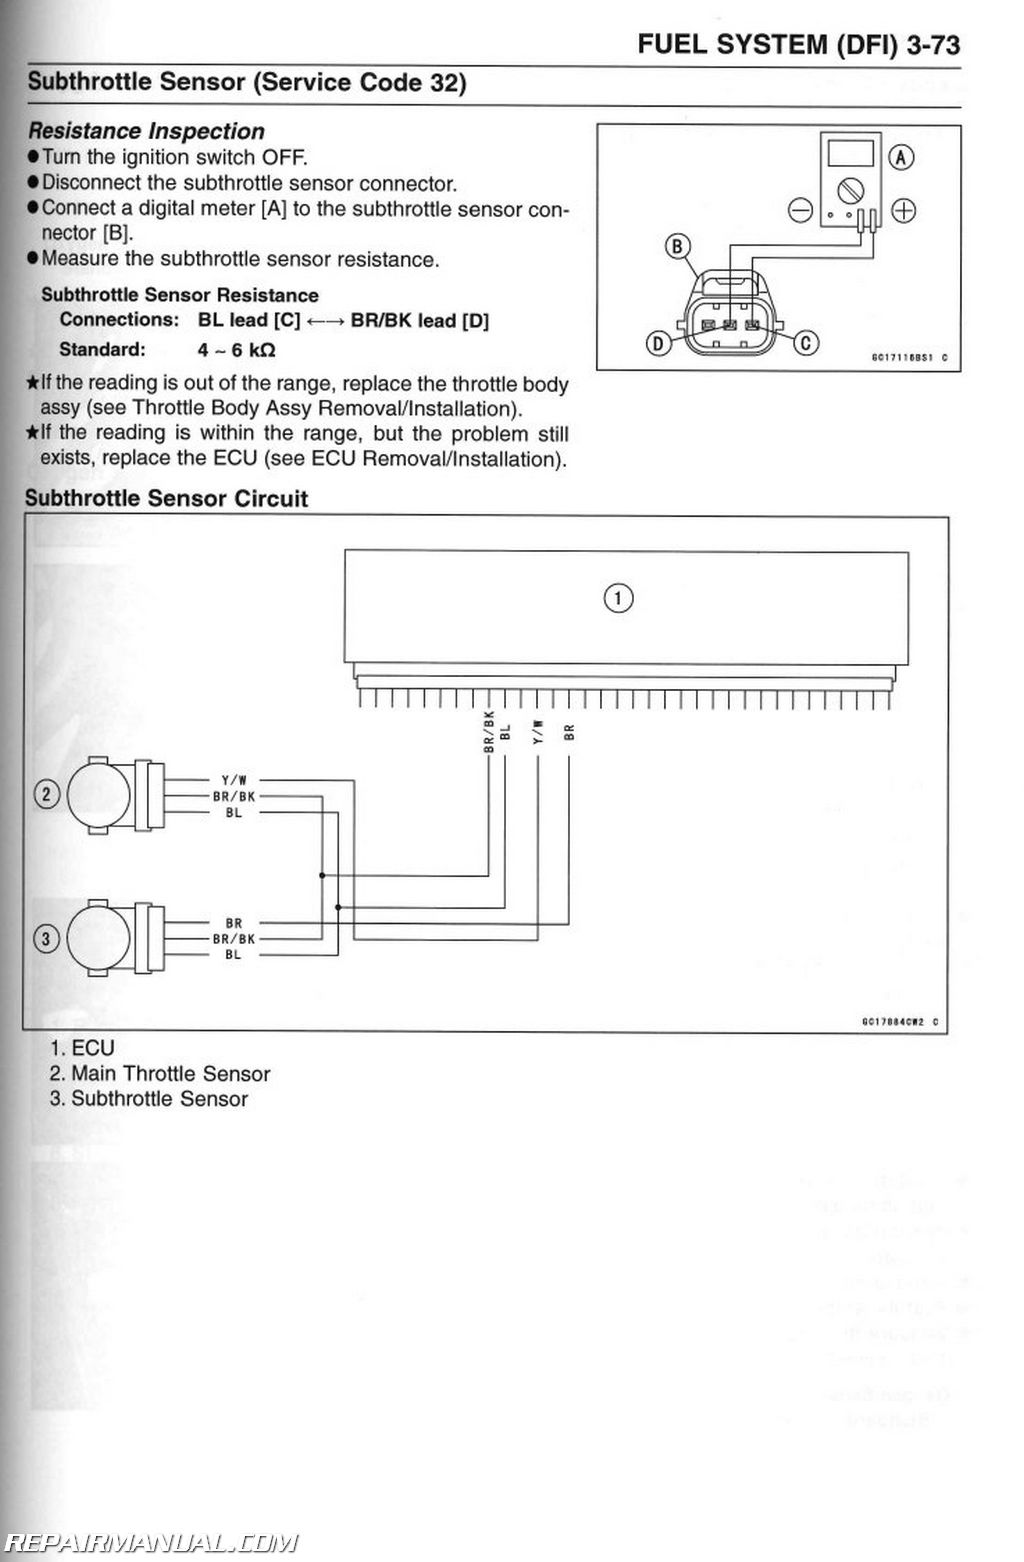 Ammeter Wiring Diagram Omc 172995 - Wiring Diagrams Schematics